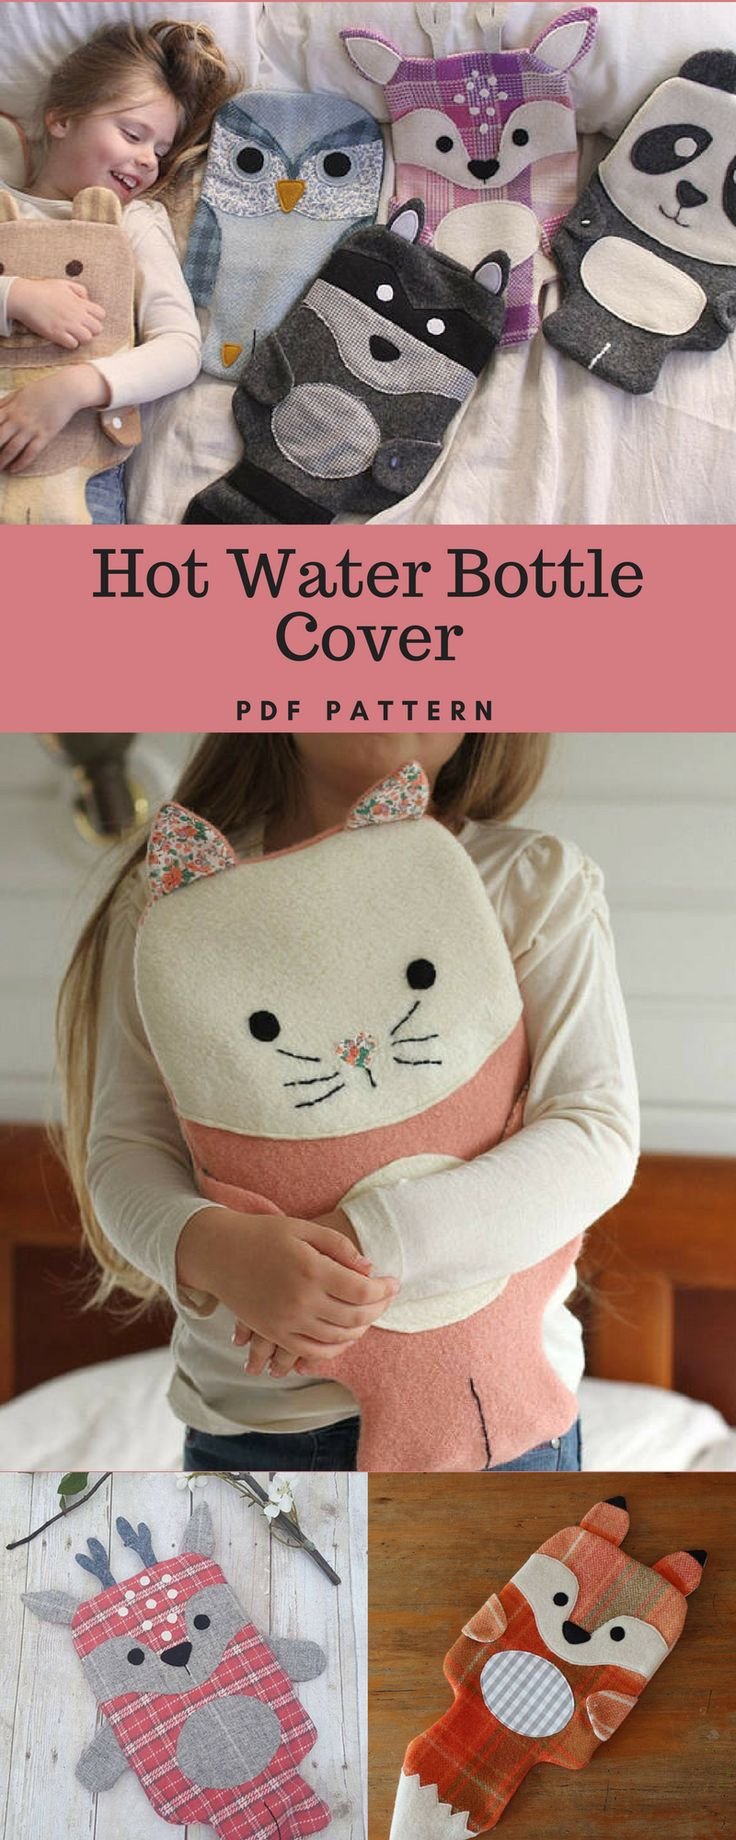 Wild Things Hot Water Bottle Covers - PDF Pattern #childroom